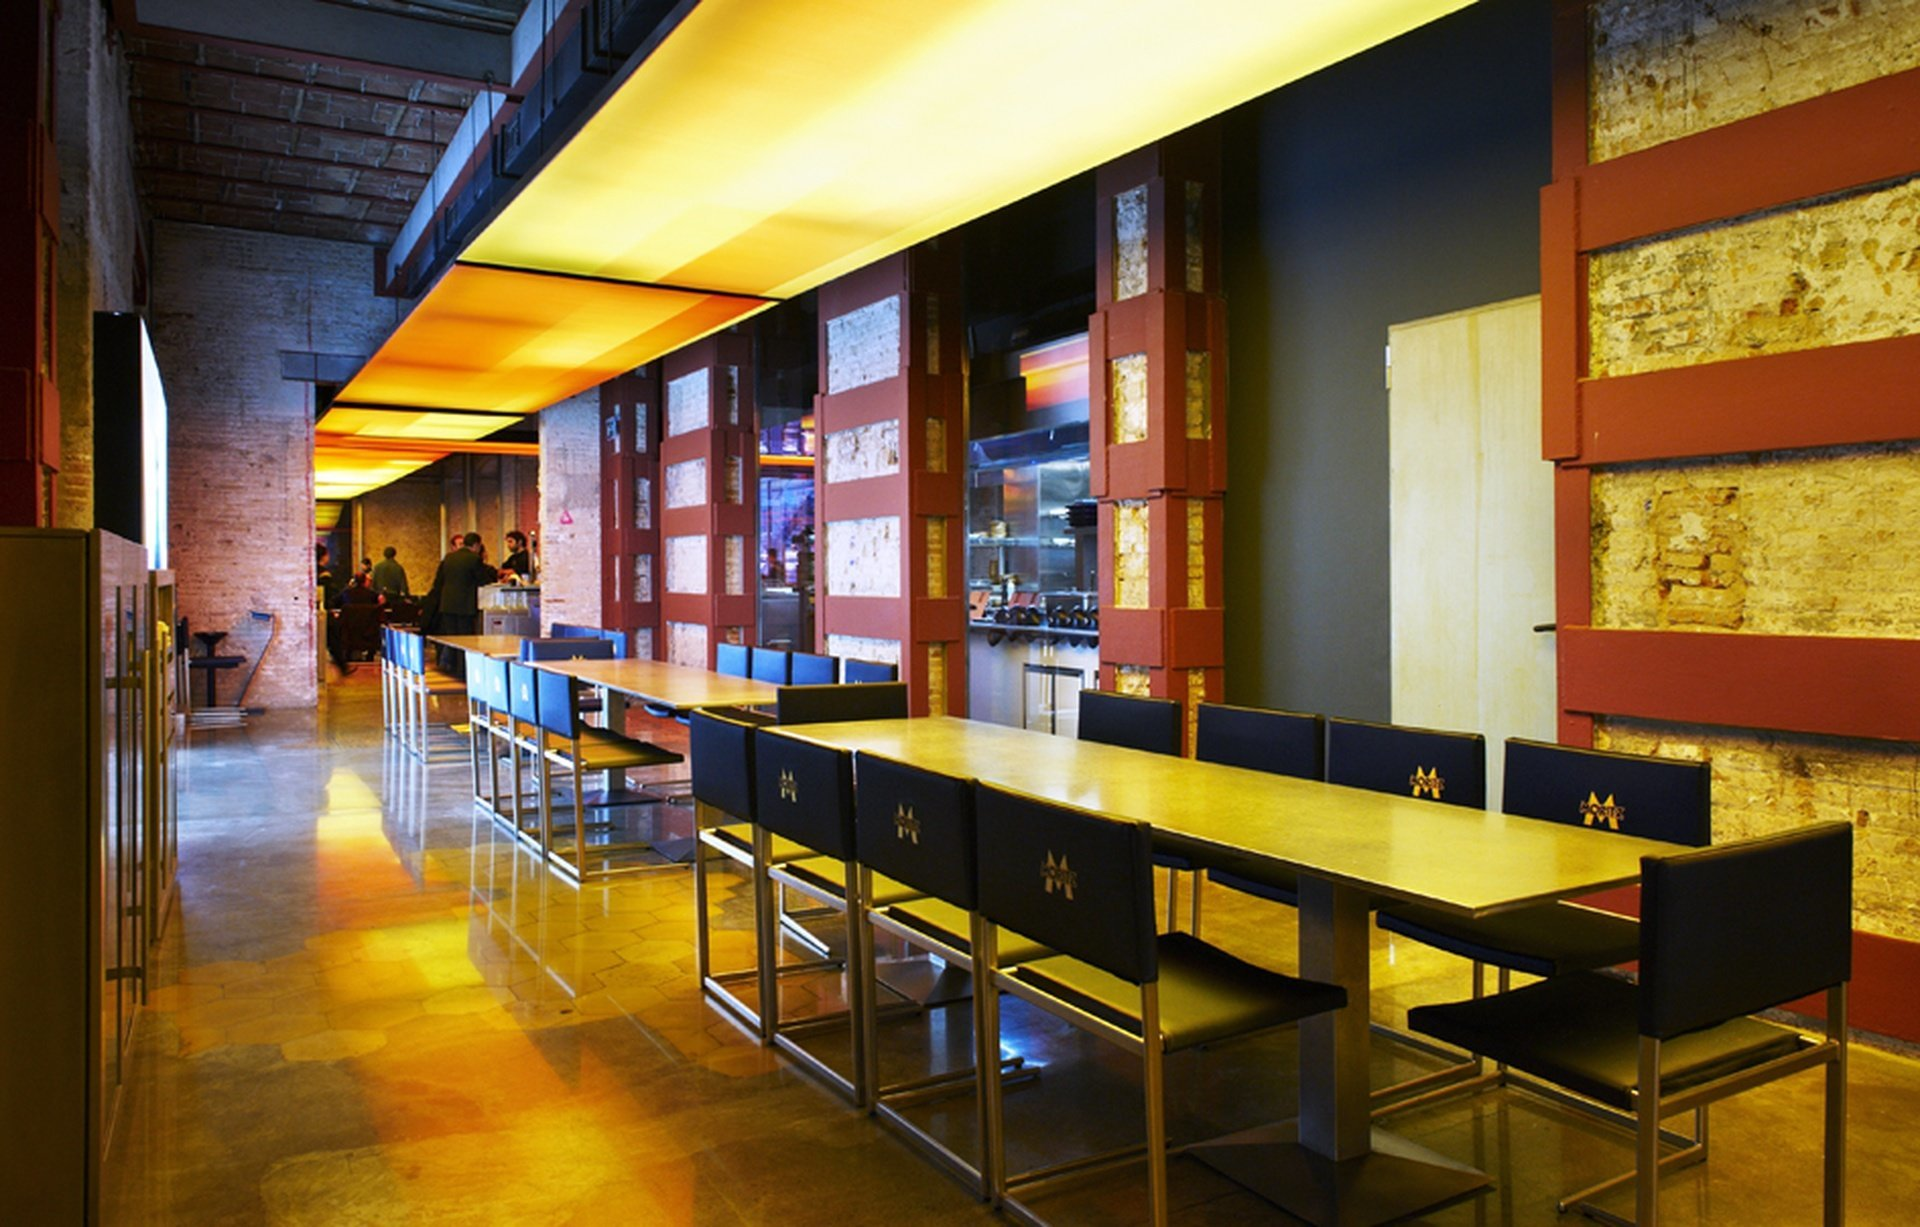 Barcelona Train station meeting rooms Restaurant Moritz Brewery - Brewery Space image 0